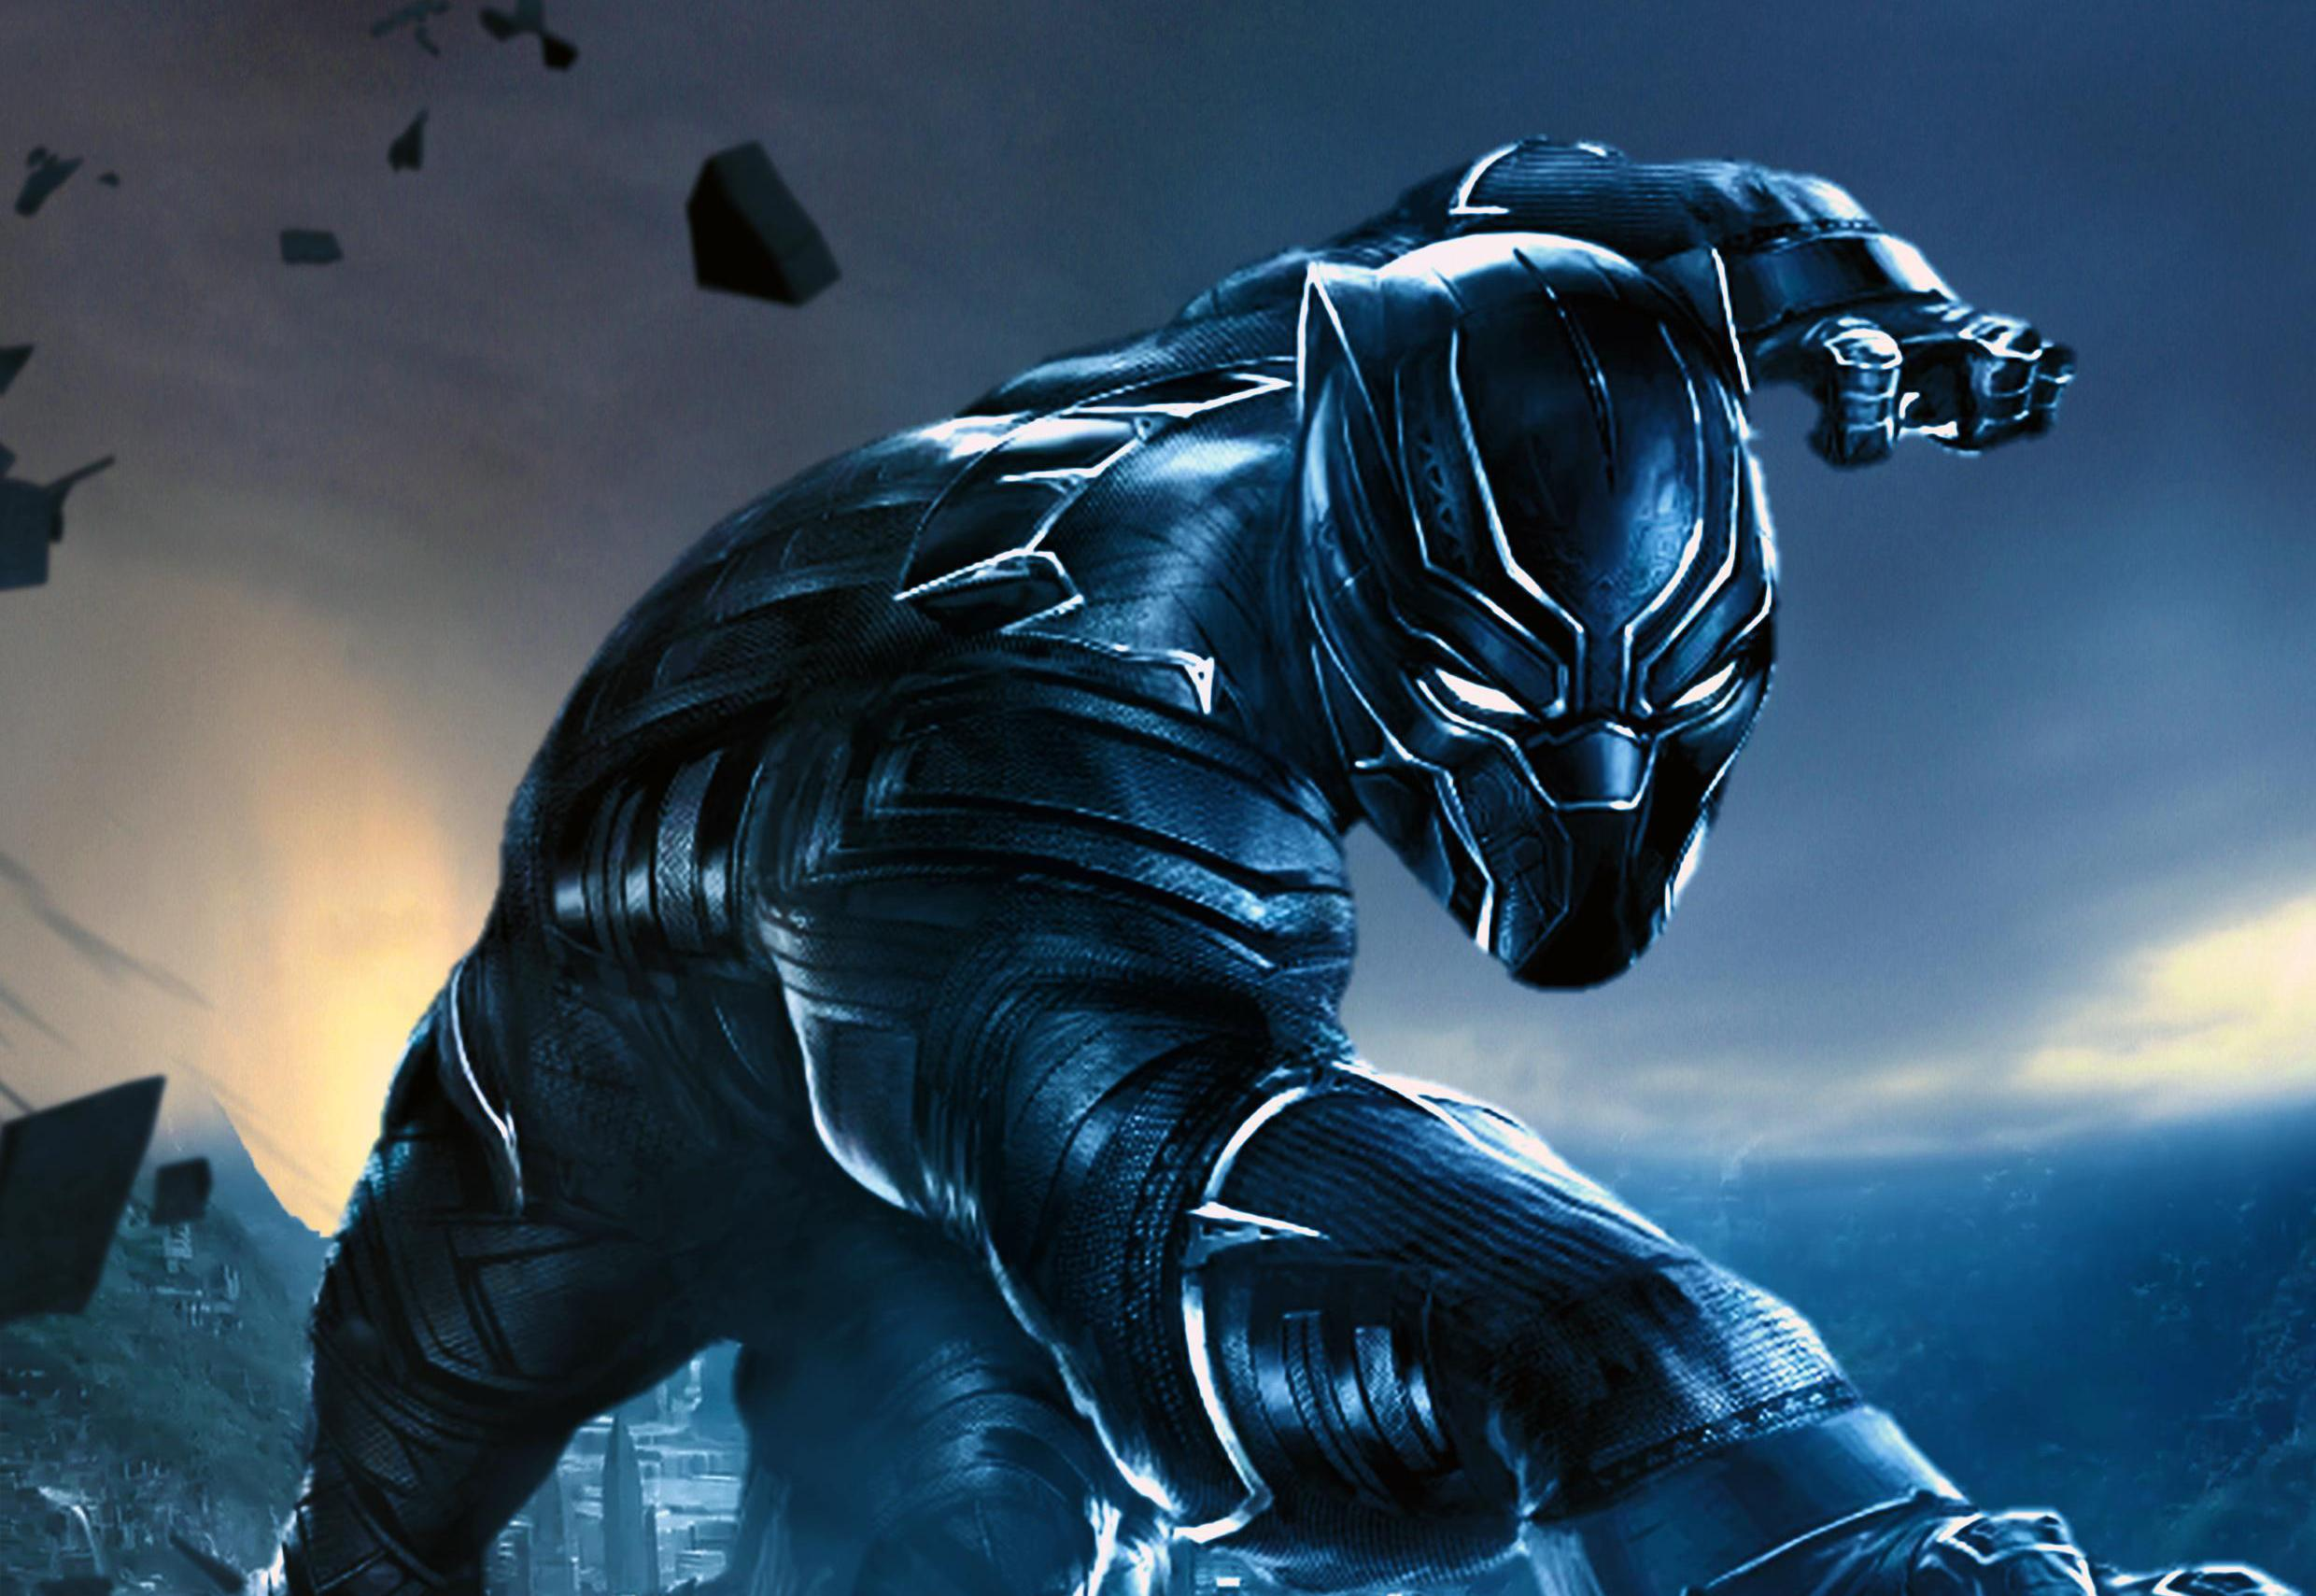 Download Black Panther Wallpaper Hd Backgrounds Download